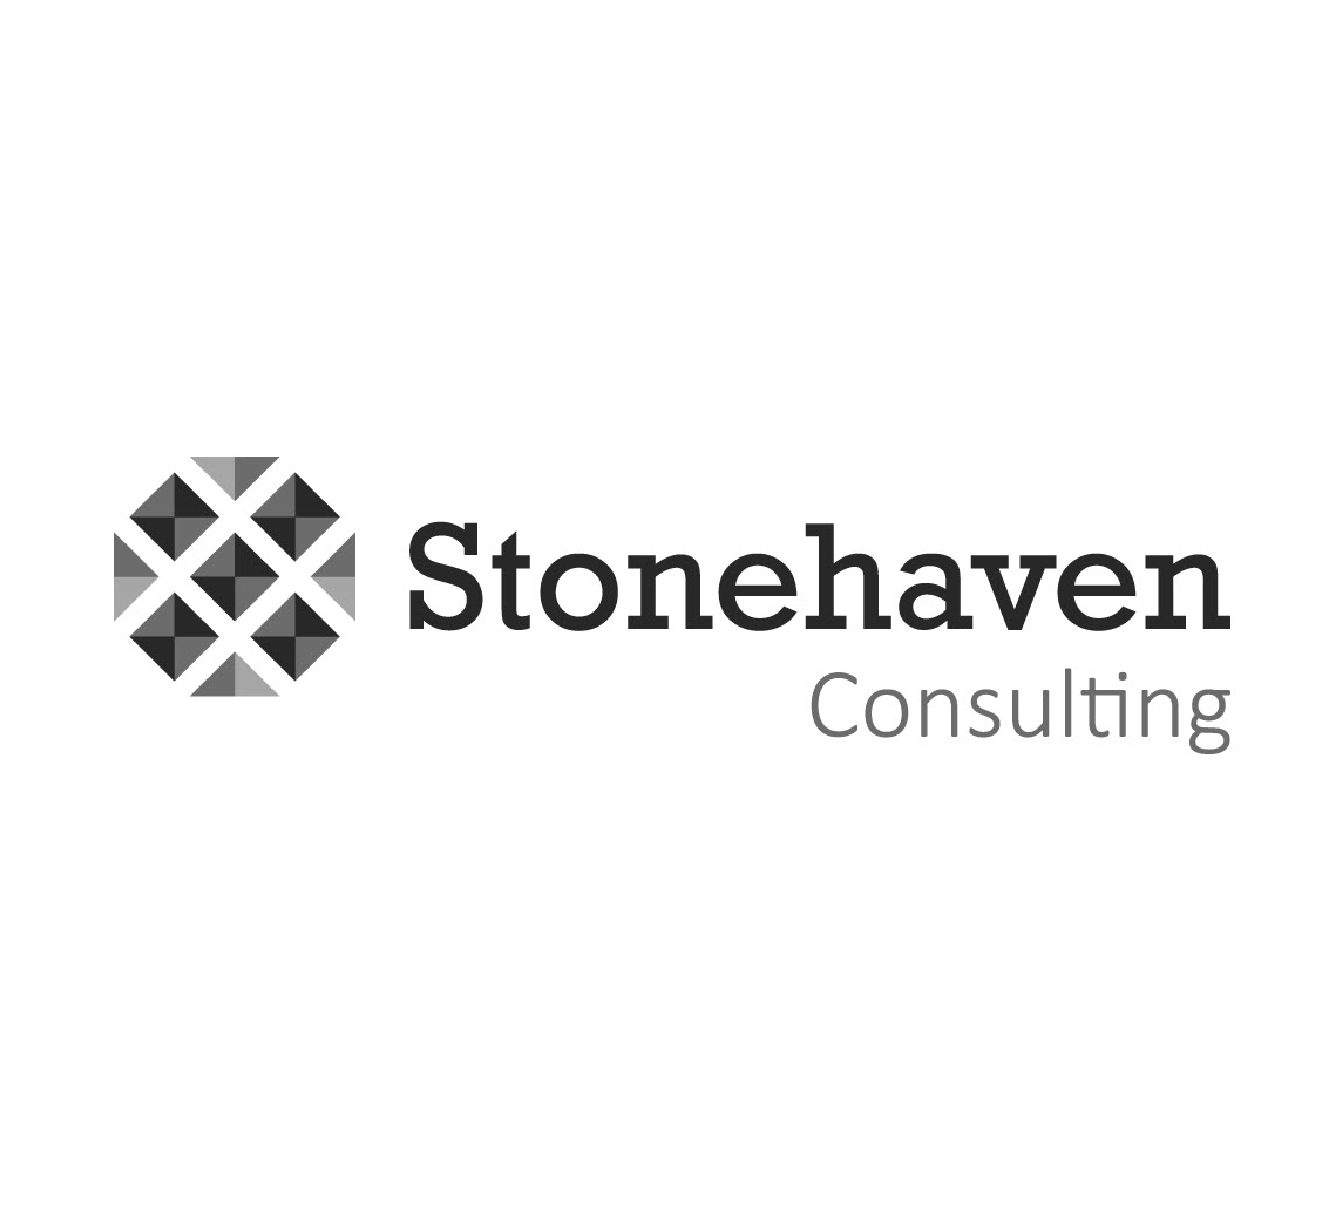 Stonehaven Consulting